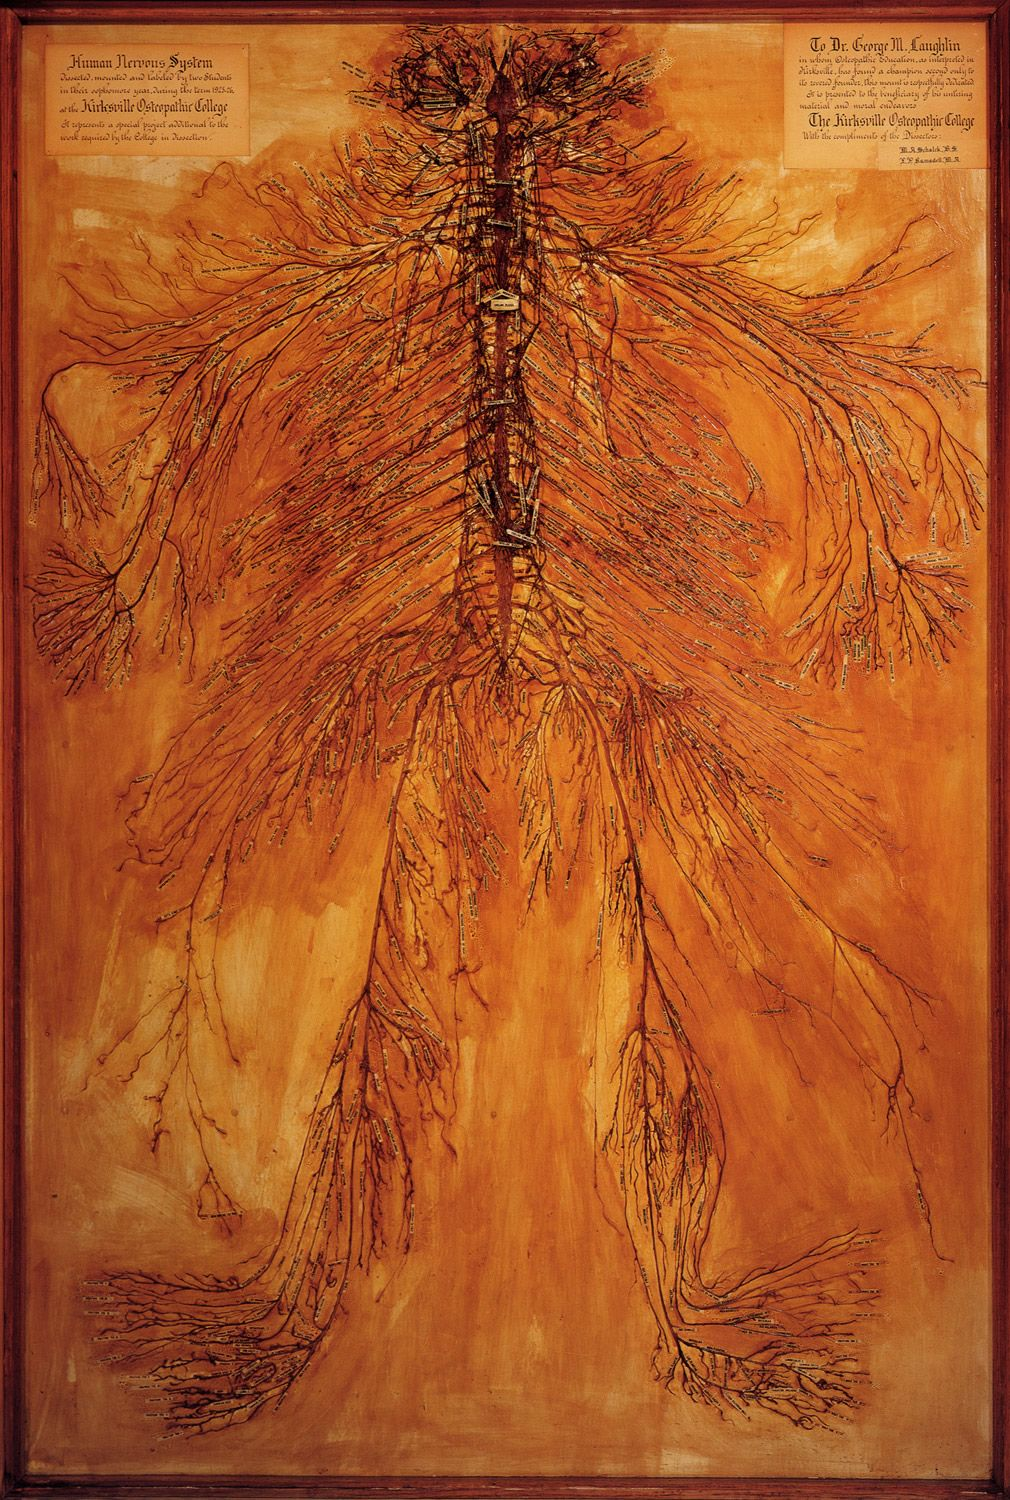 body and light photo human nervous system systems art medical history human [ 1010 x 1500 Pixel ]